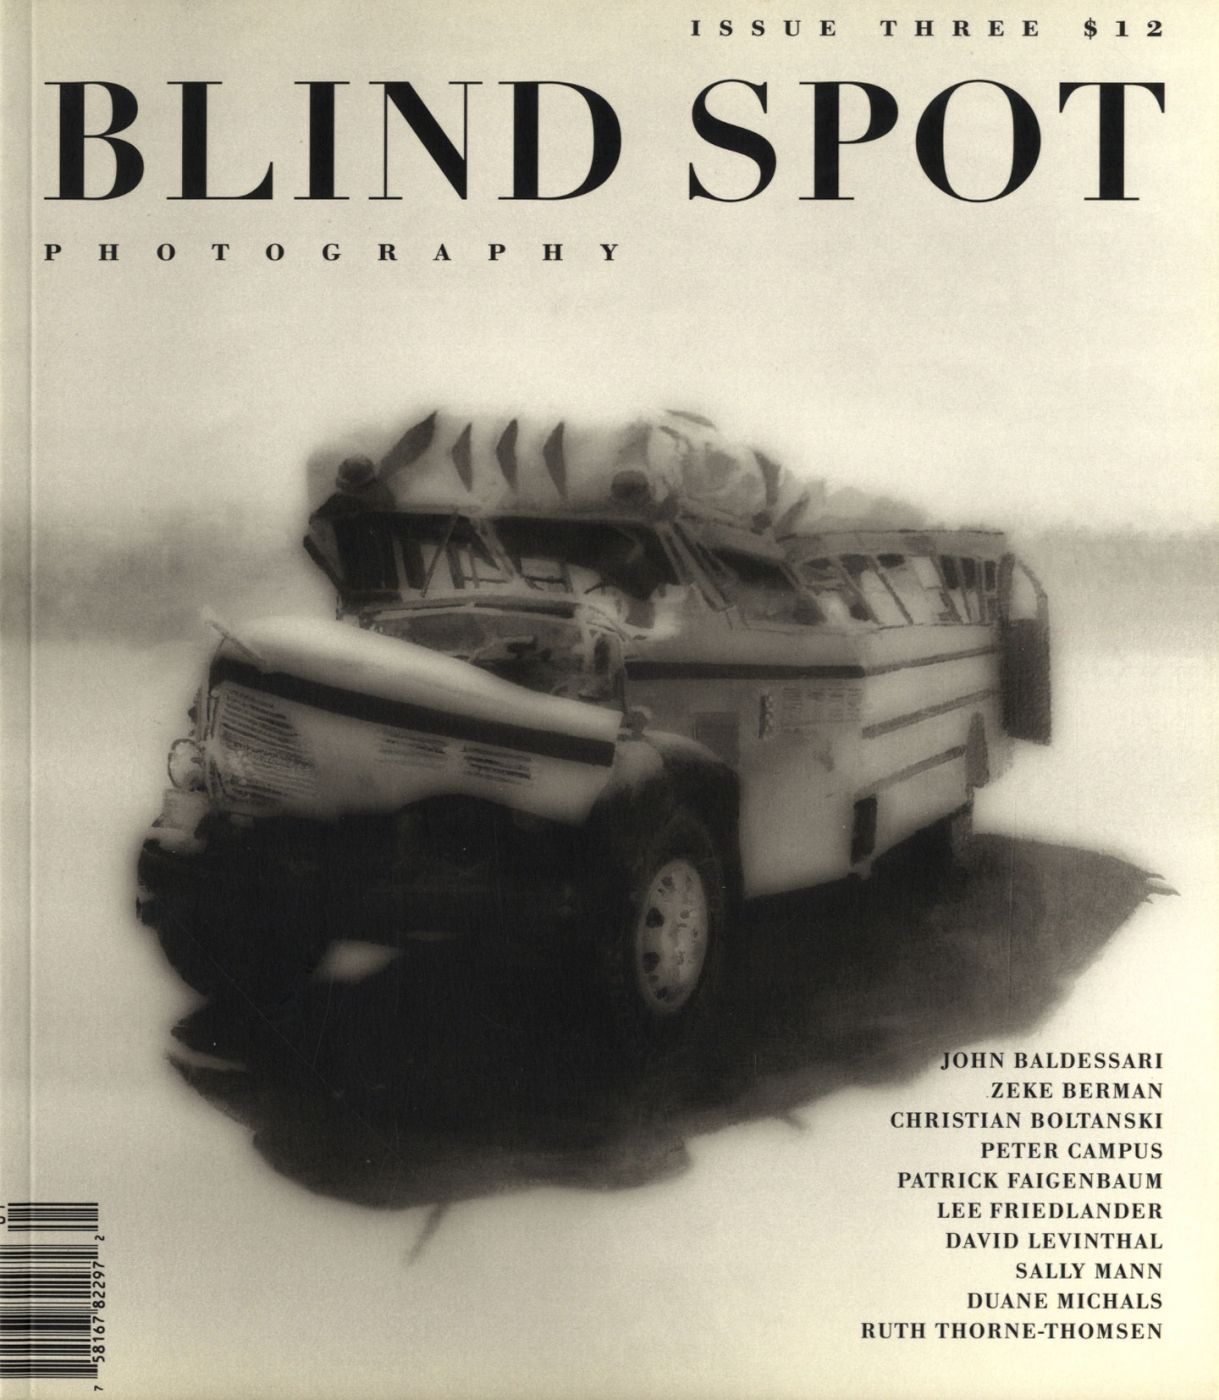 Blind Spot #3 (Photography Journal, Issue Three)